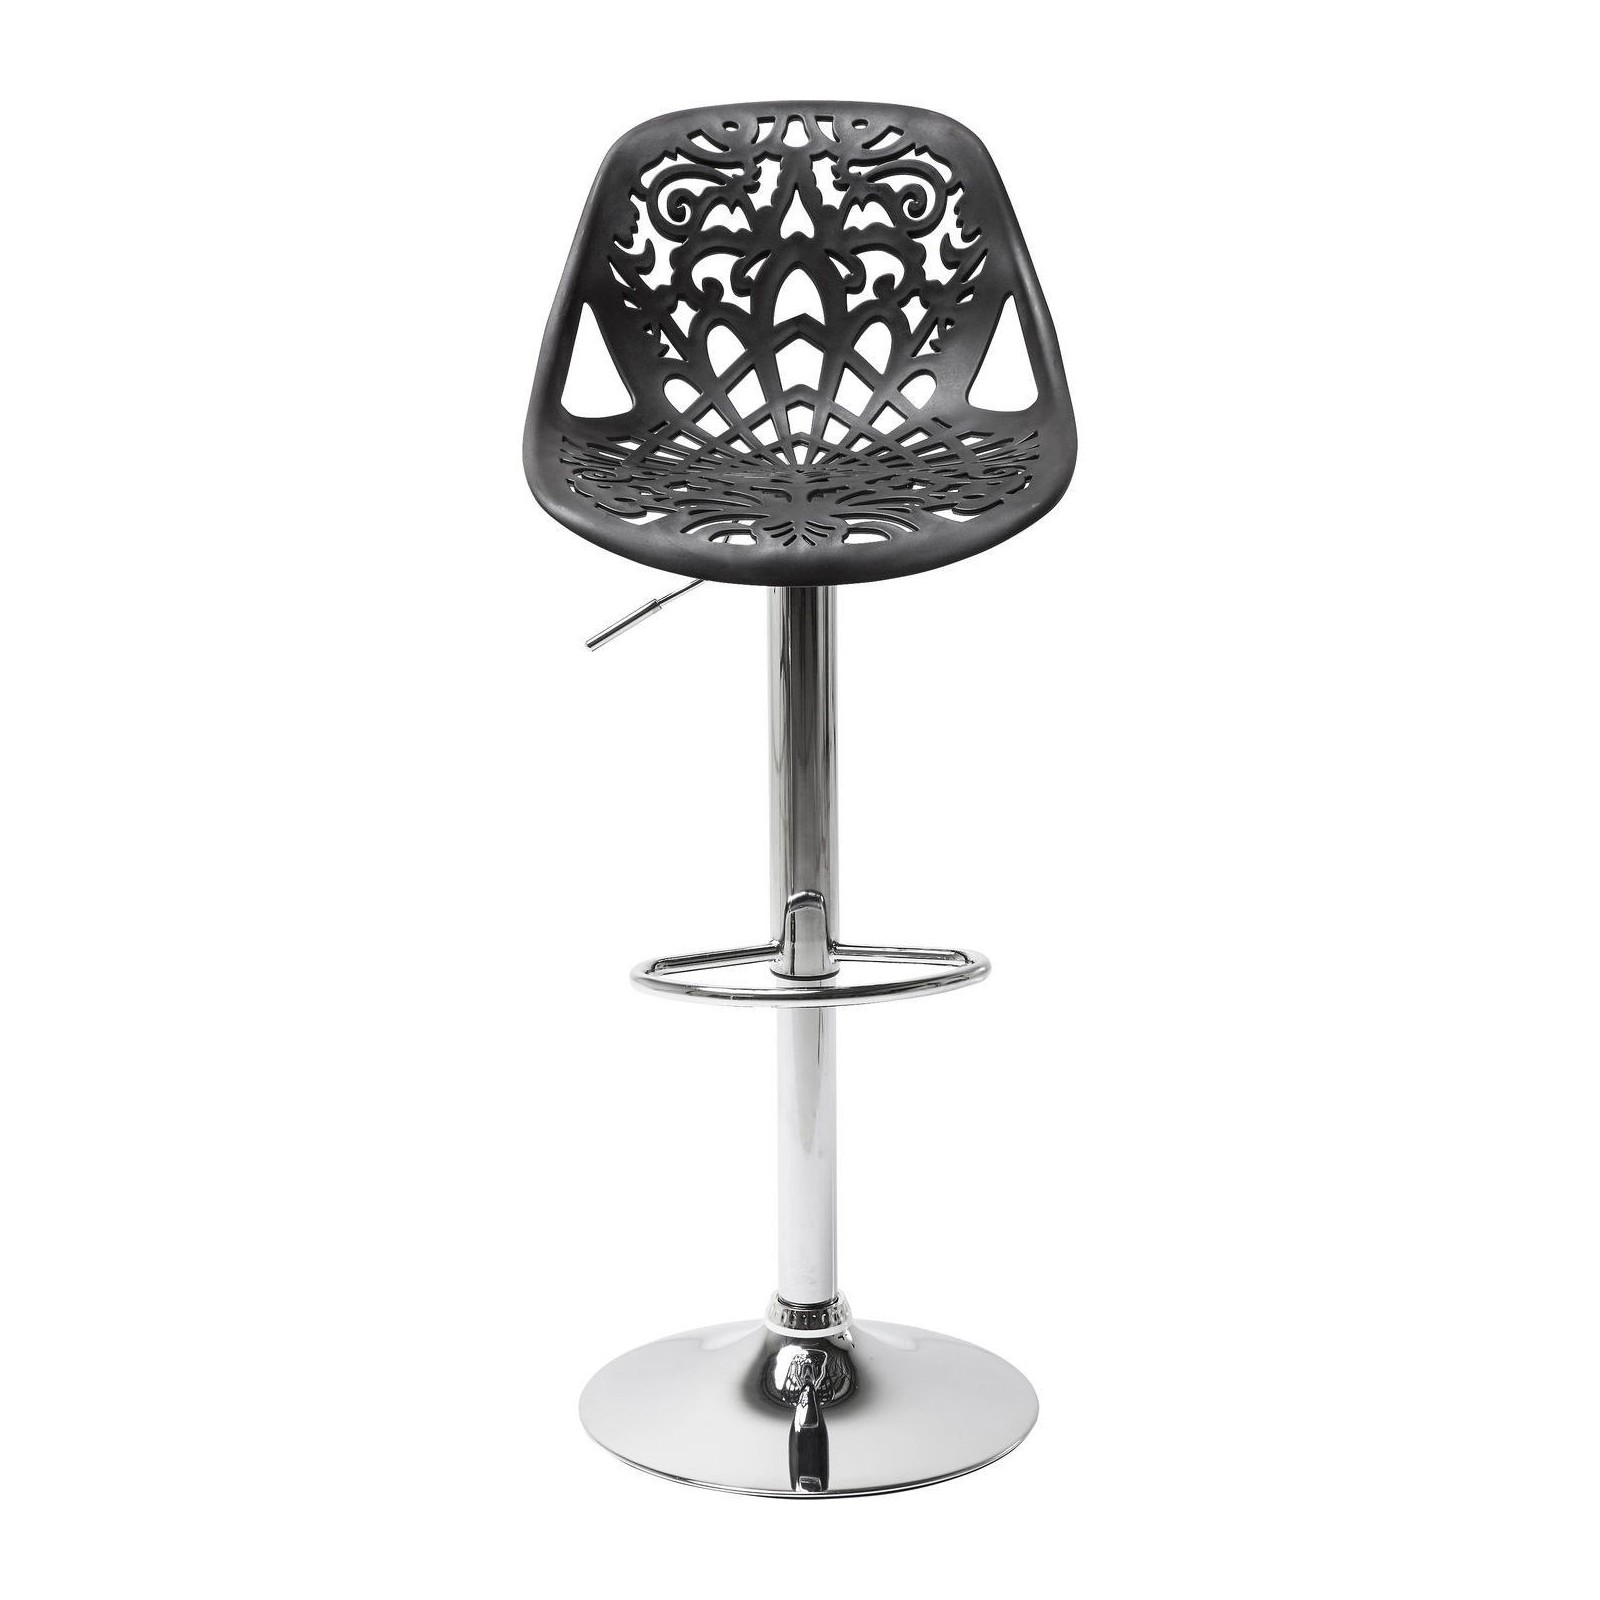 Tabouret De Bar Contemporain Noir Ornament Kare Design